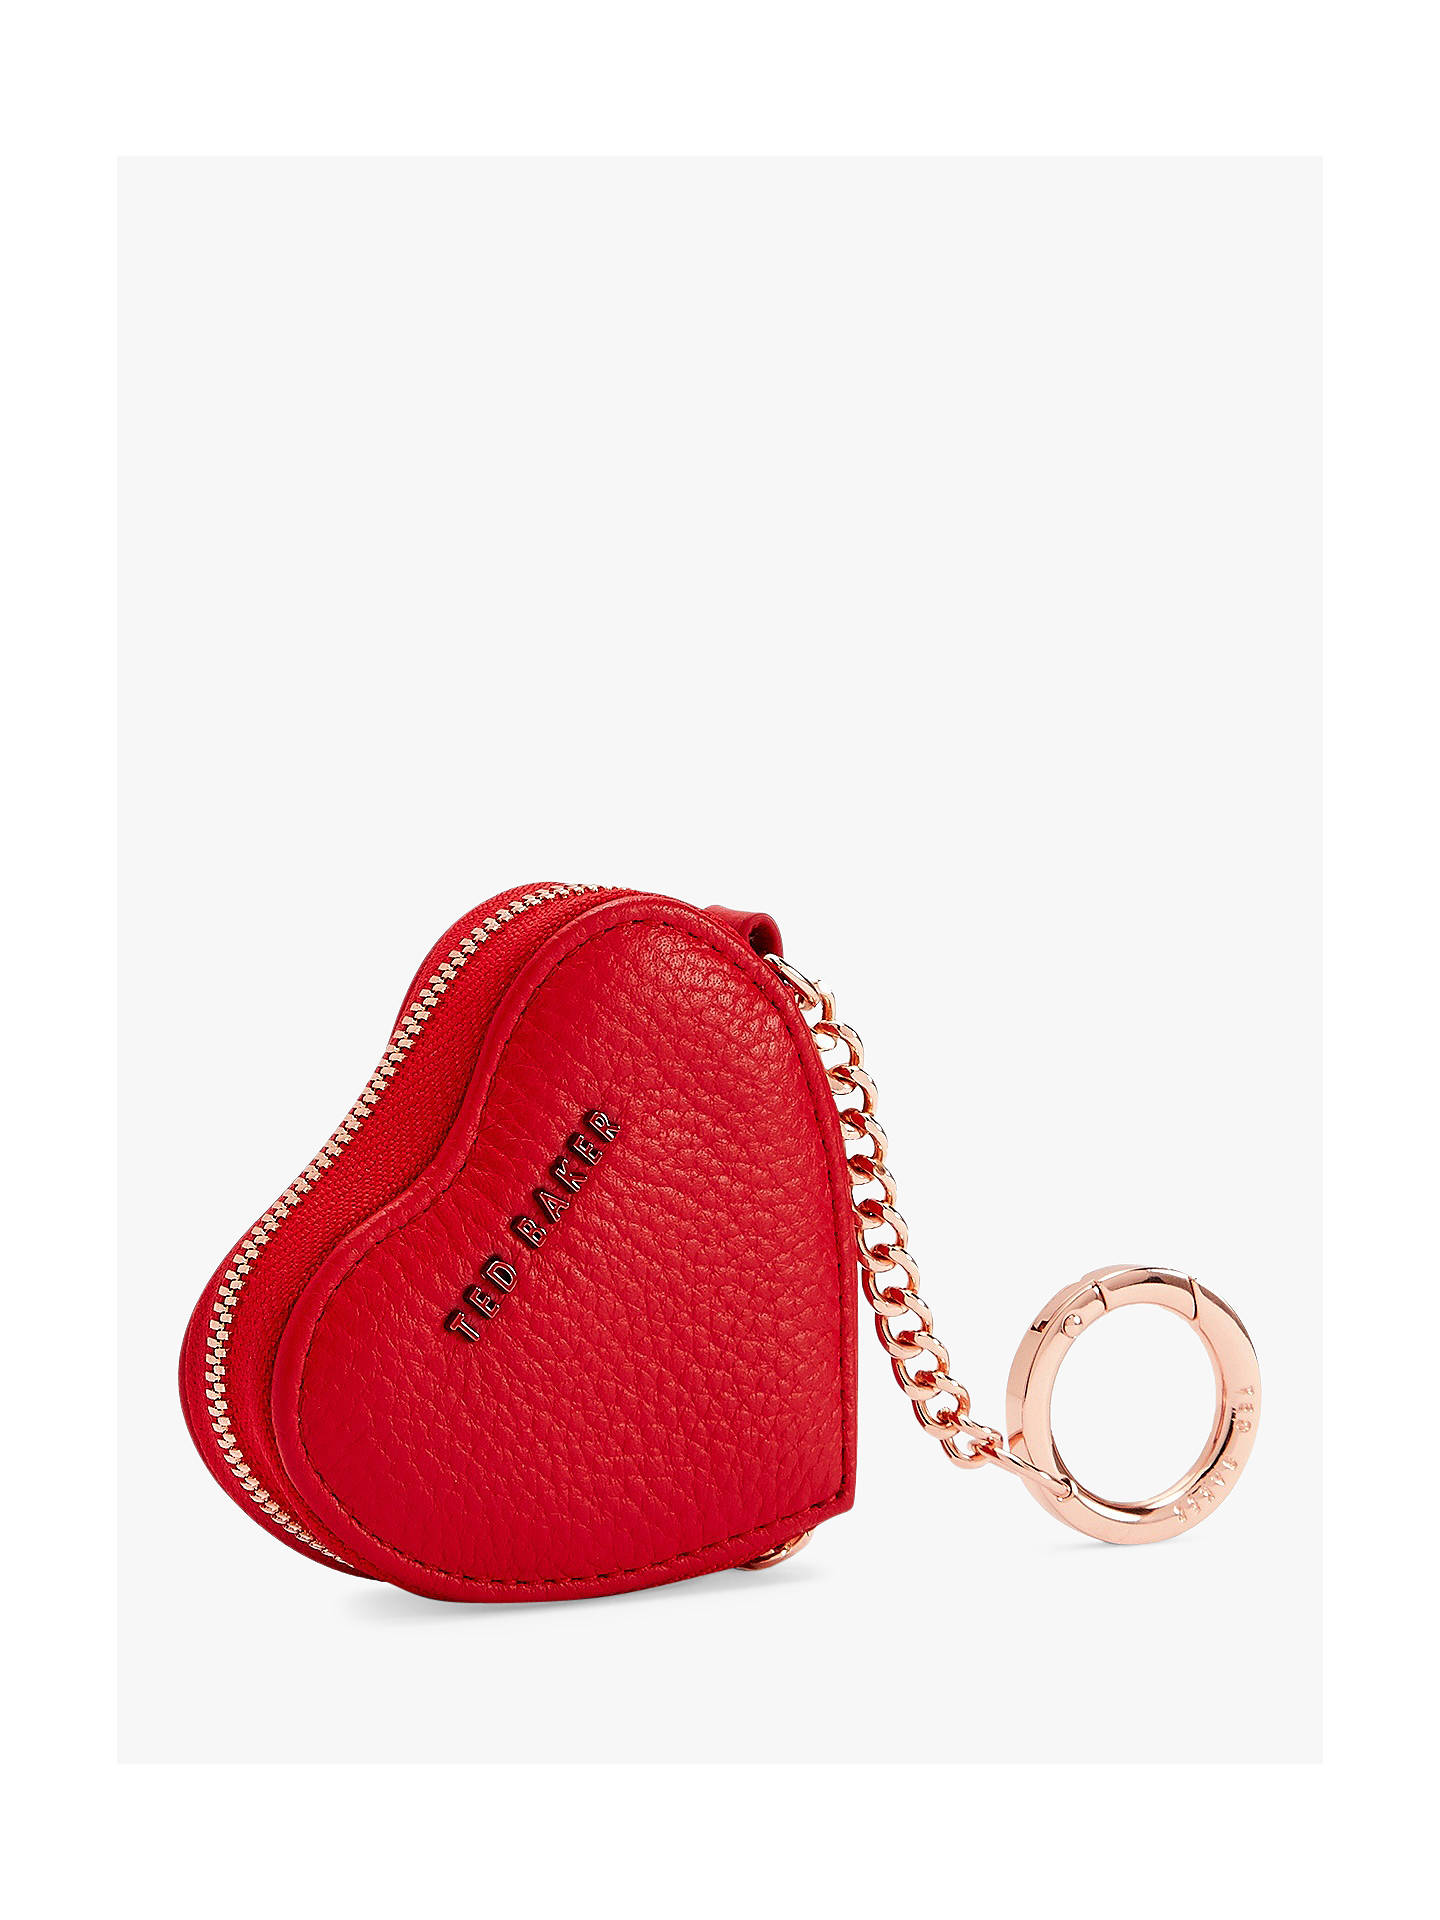 cb3a594c4069bb Ted Baker Kahi Leather Heart Coin Purse Keyring at John Lewis   Partners